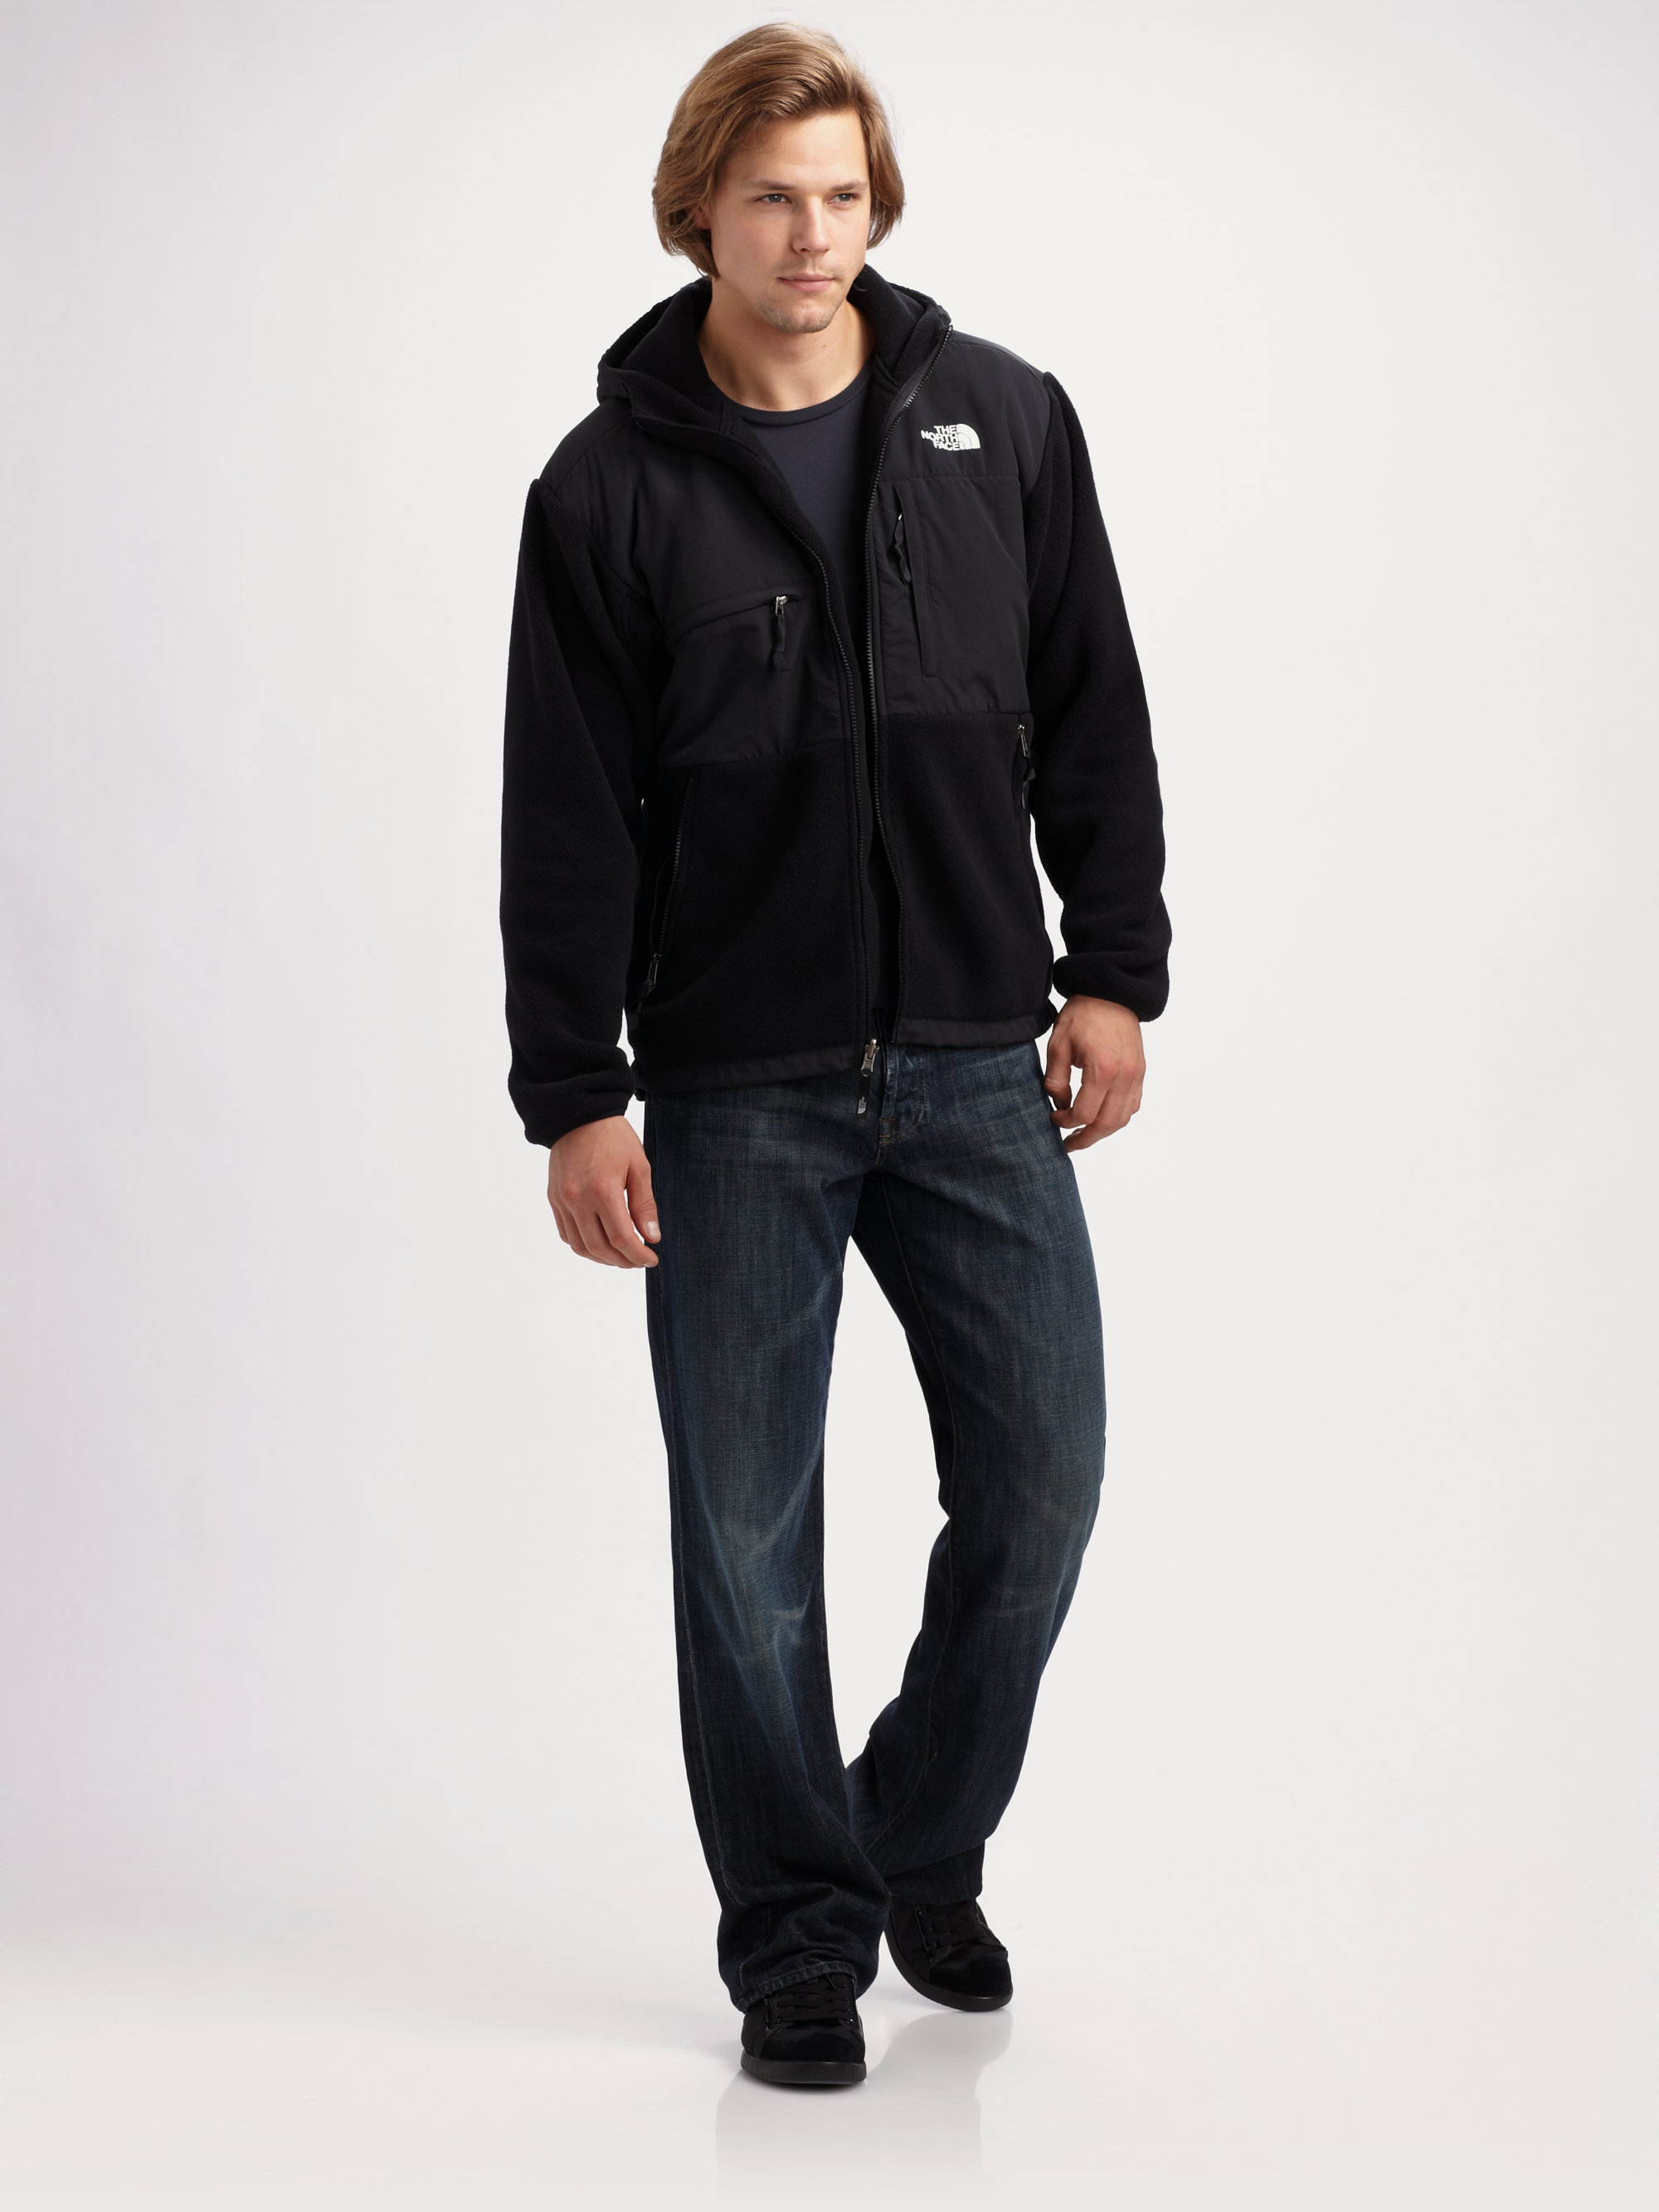 587b92b89229 ... spain coupon code for lyst the north face hooded fleece jacket in black  for men f62d6